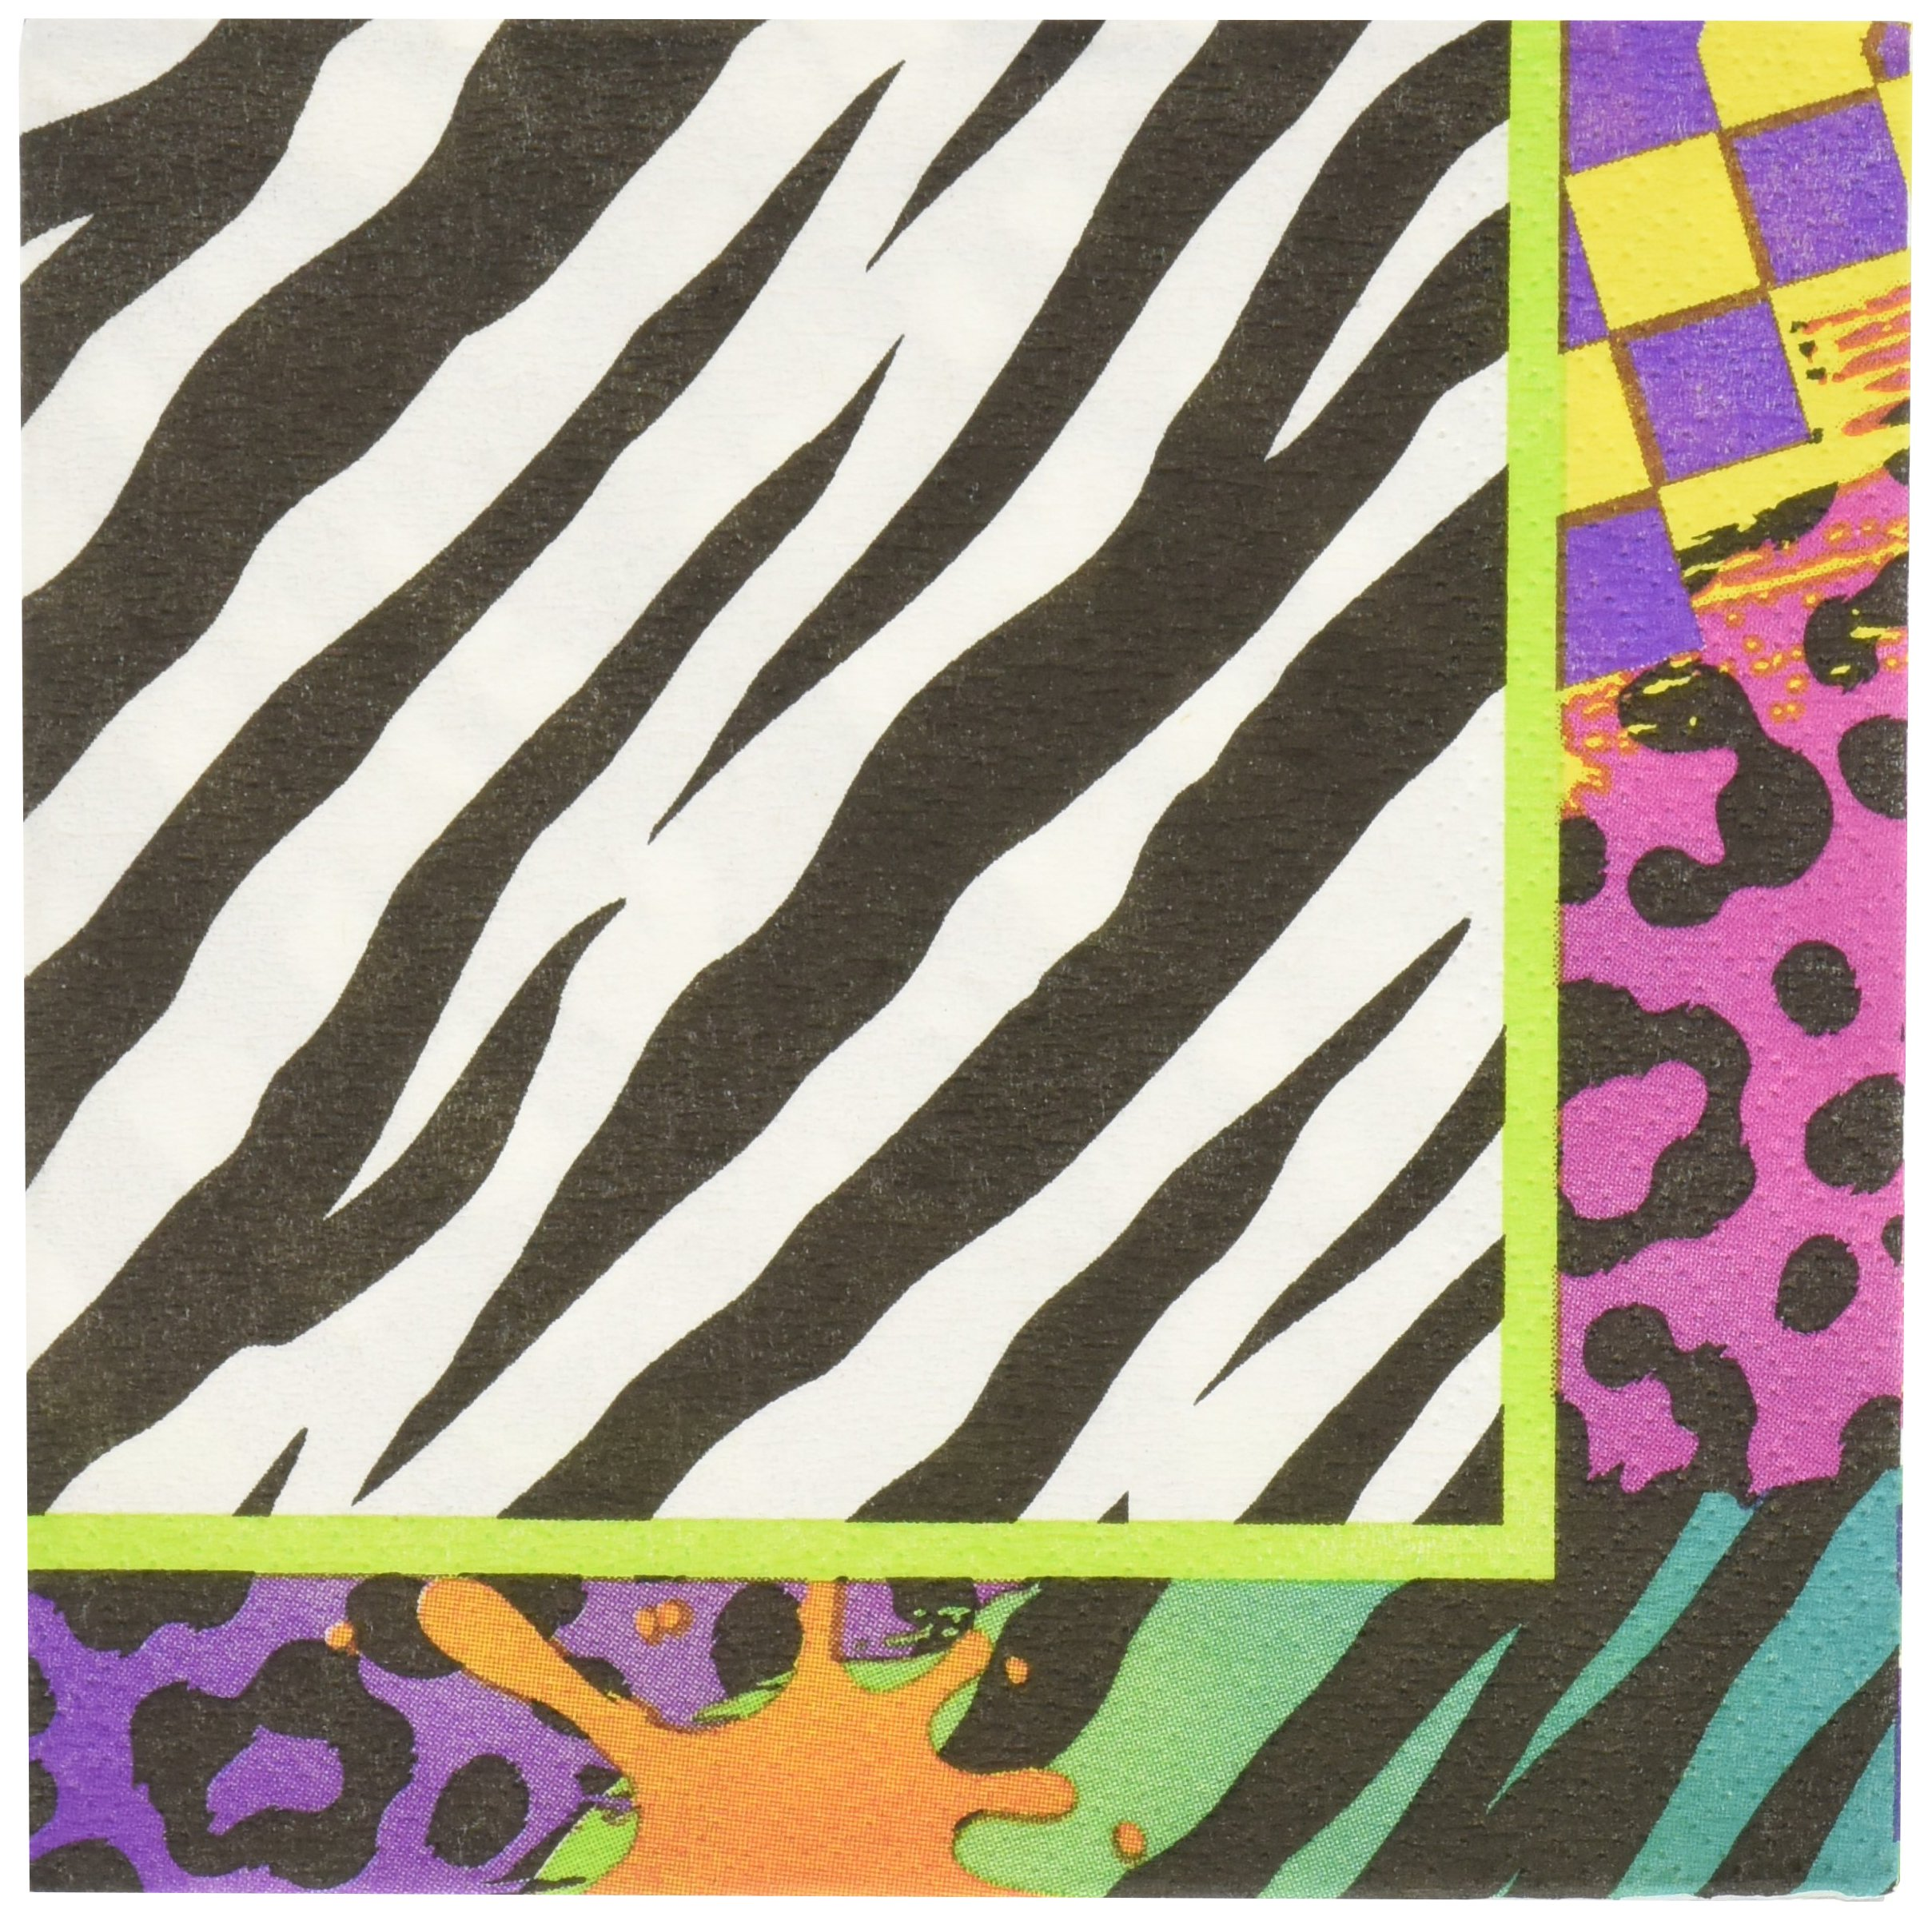 Amscan Totally 80's Party Assorted Prints & Patters Medley Beverage Napkins (16 Piece), Multi Color, 5 x 5″